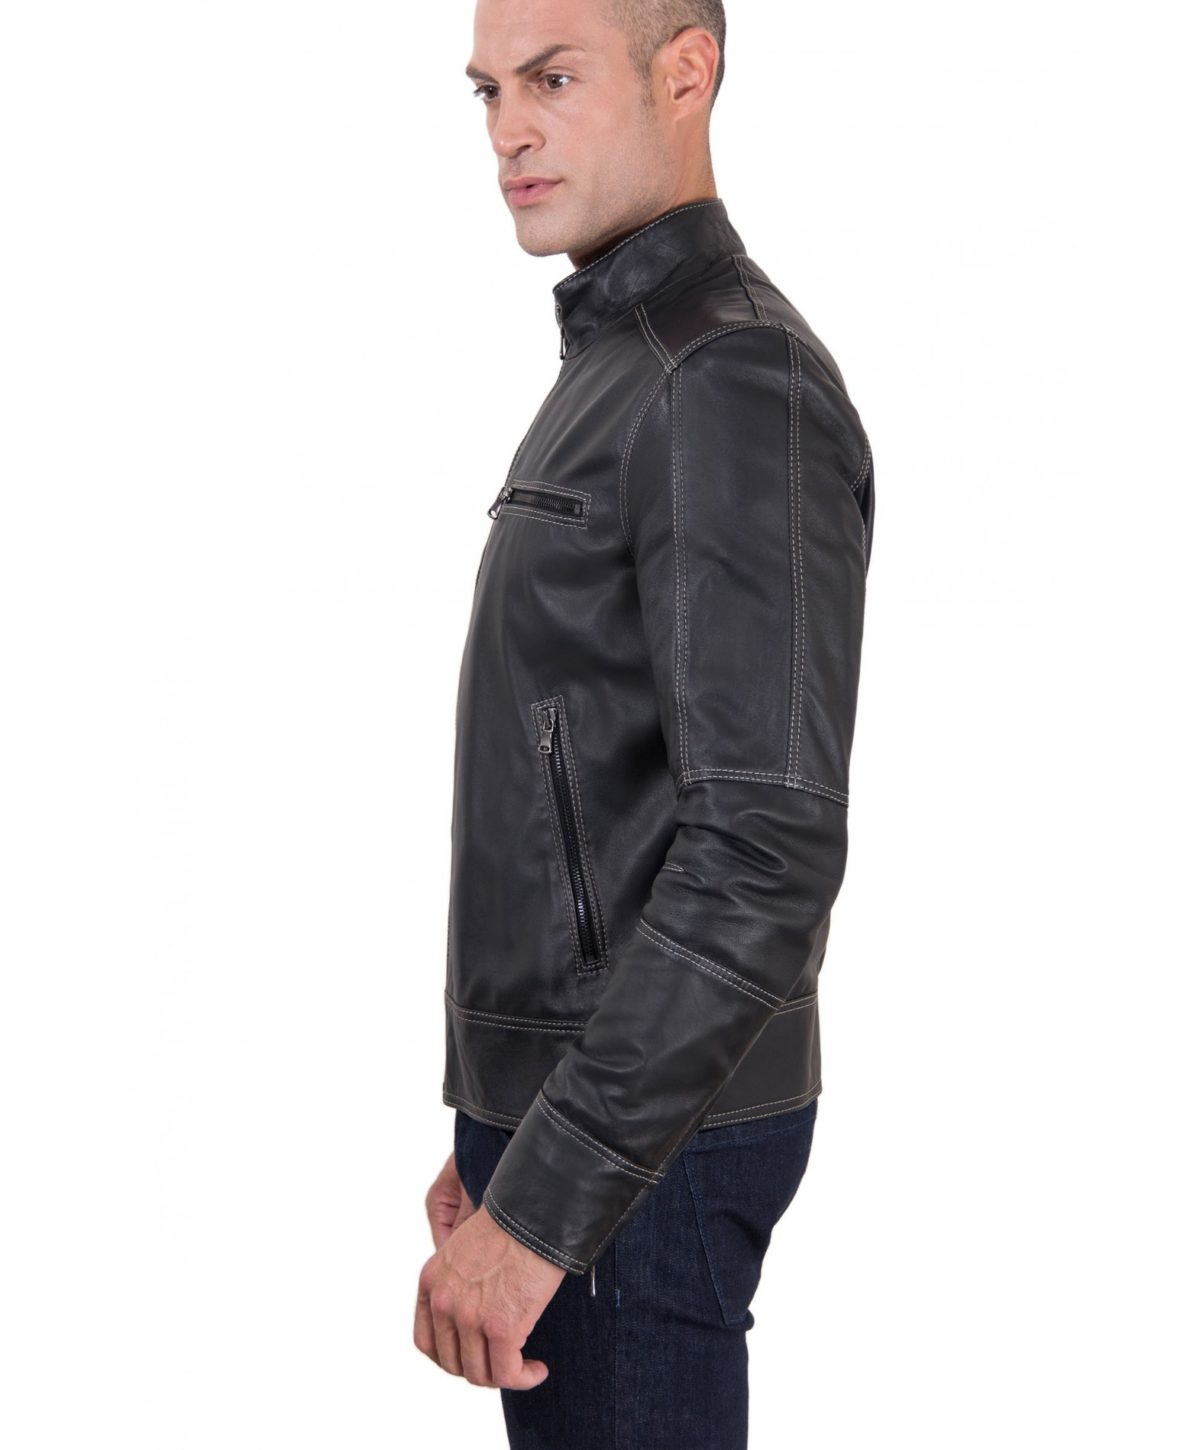 men-s-leather-jacket-constrasting-stitching-three-pockets-black-color-trus (2)